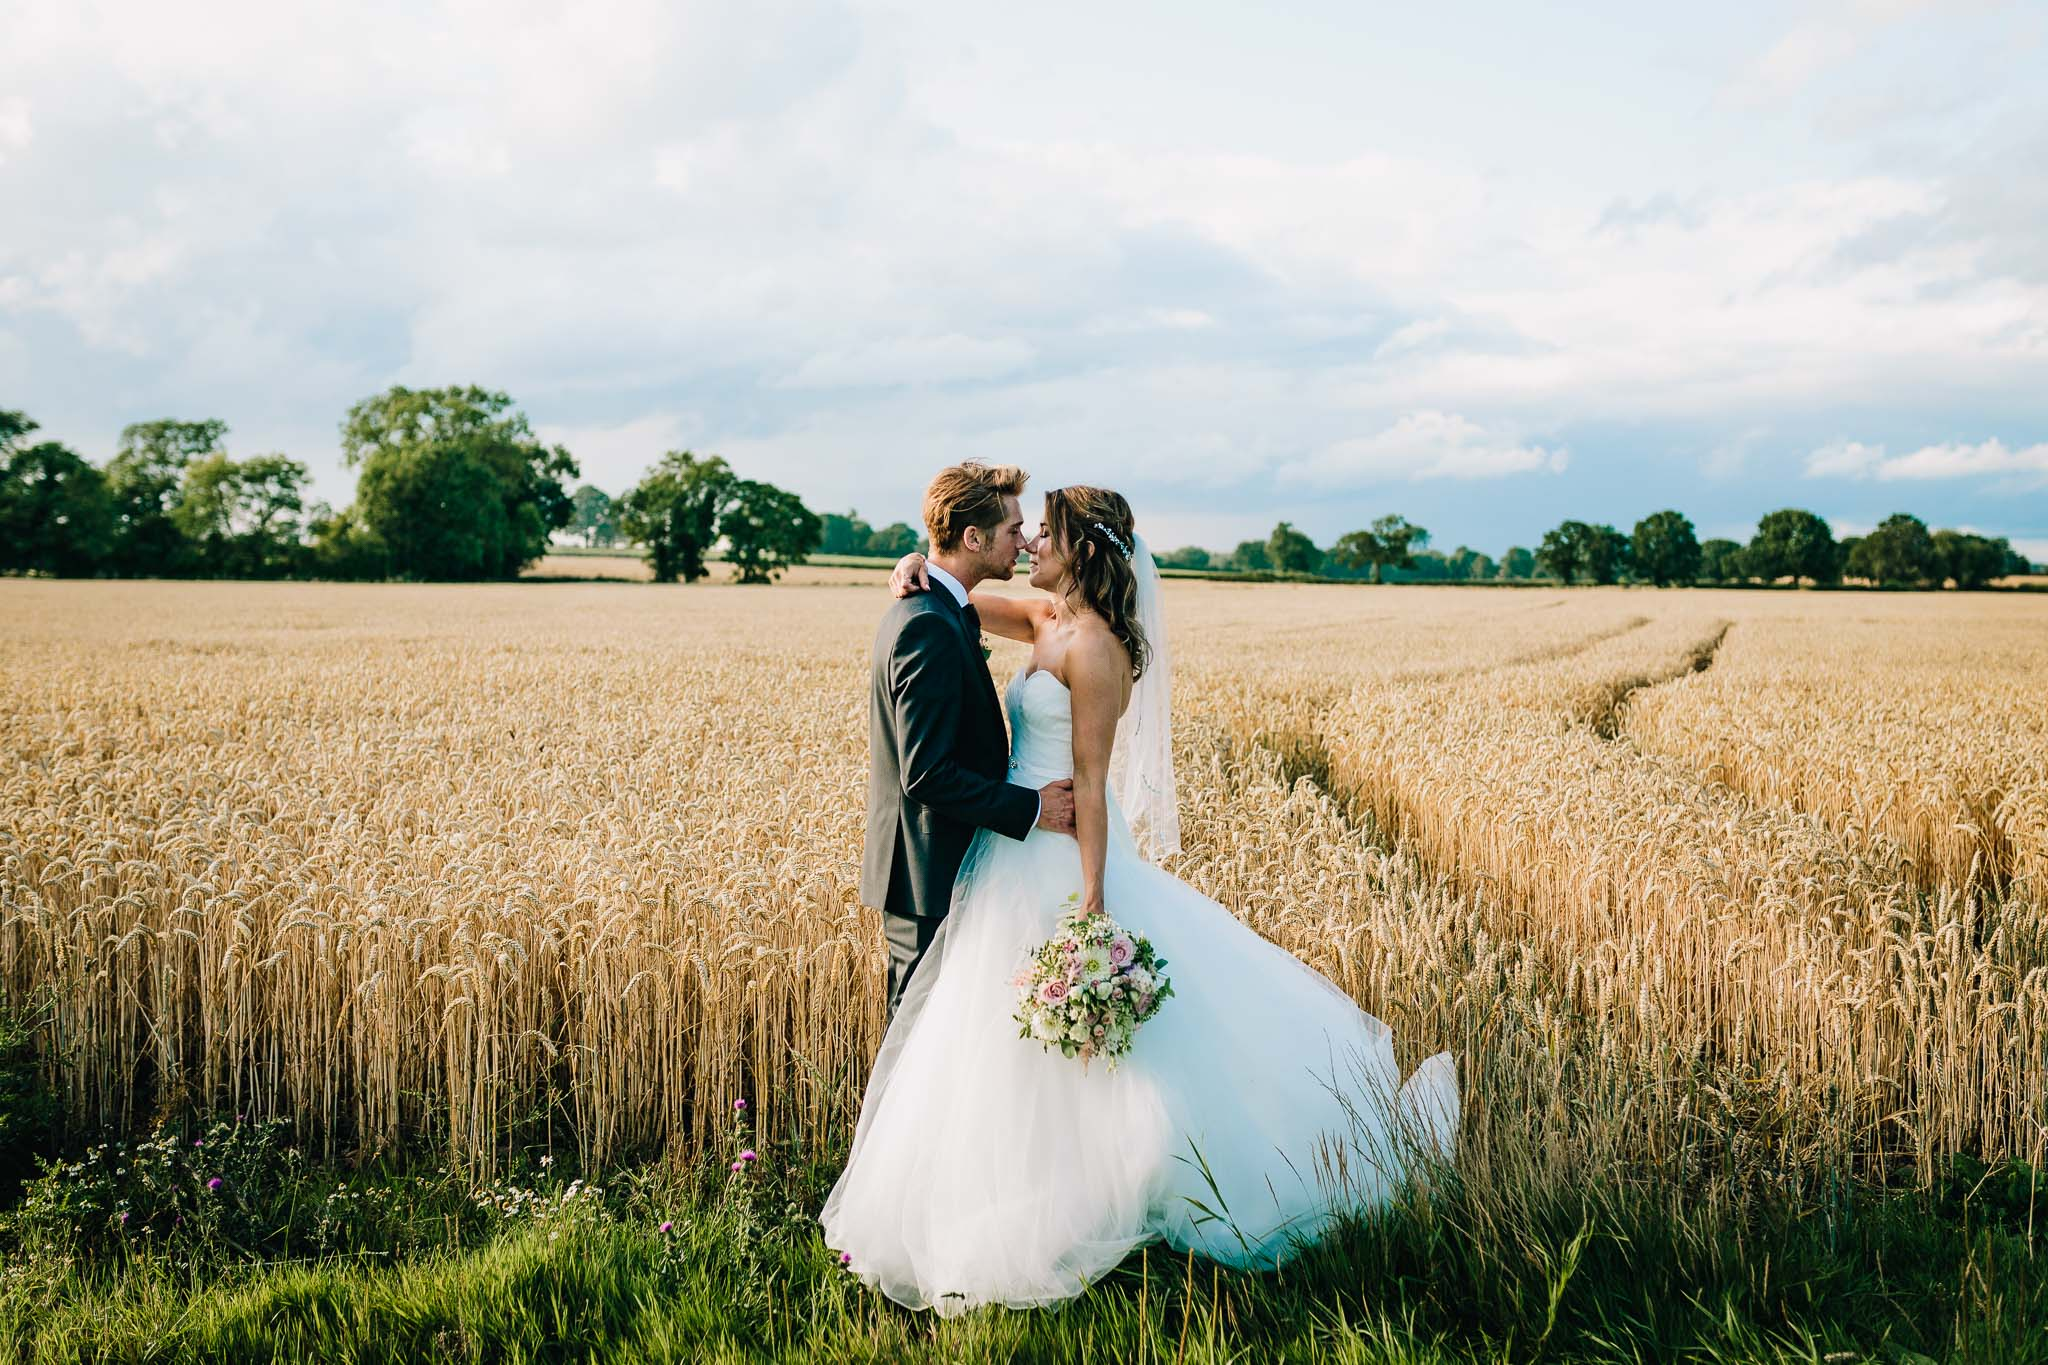 ROMANTIC BRIDAL PORTRAITS IN WHEAT FIELD SUMMER